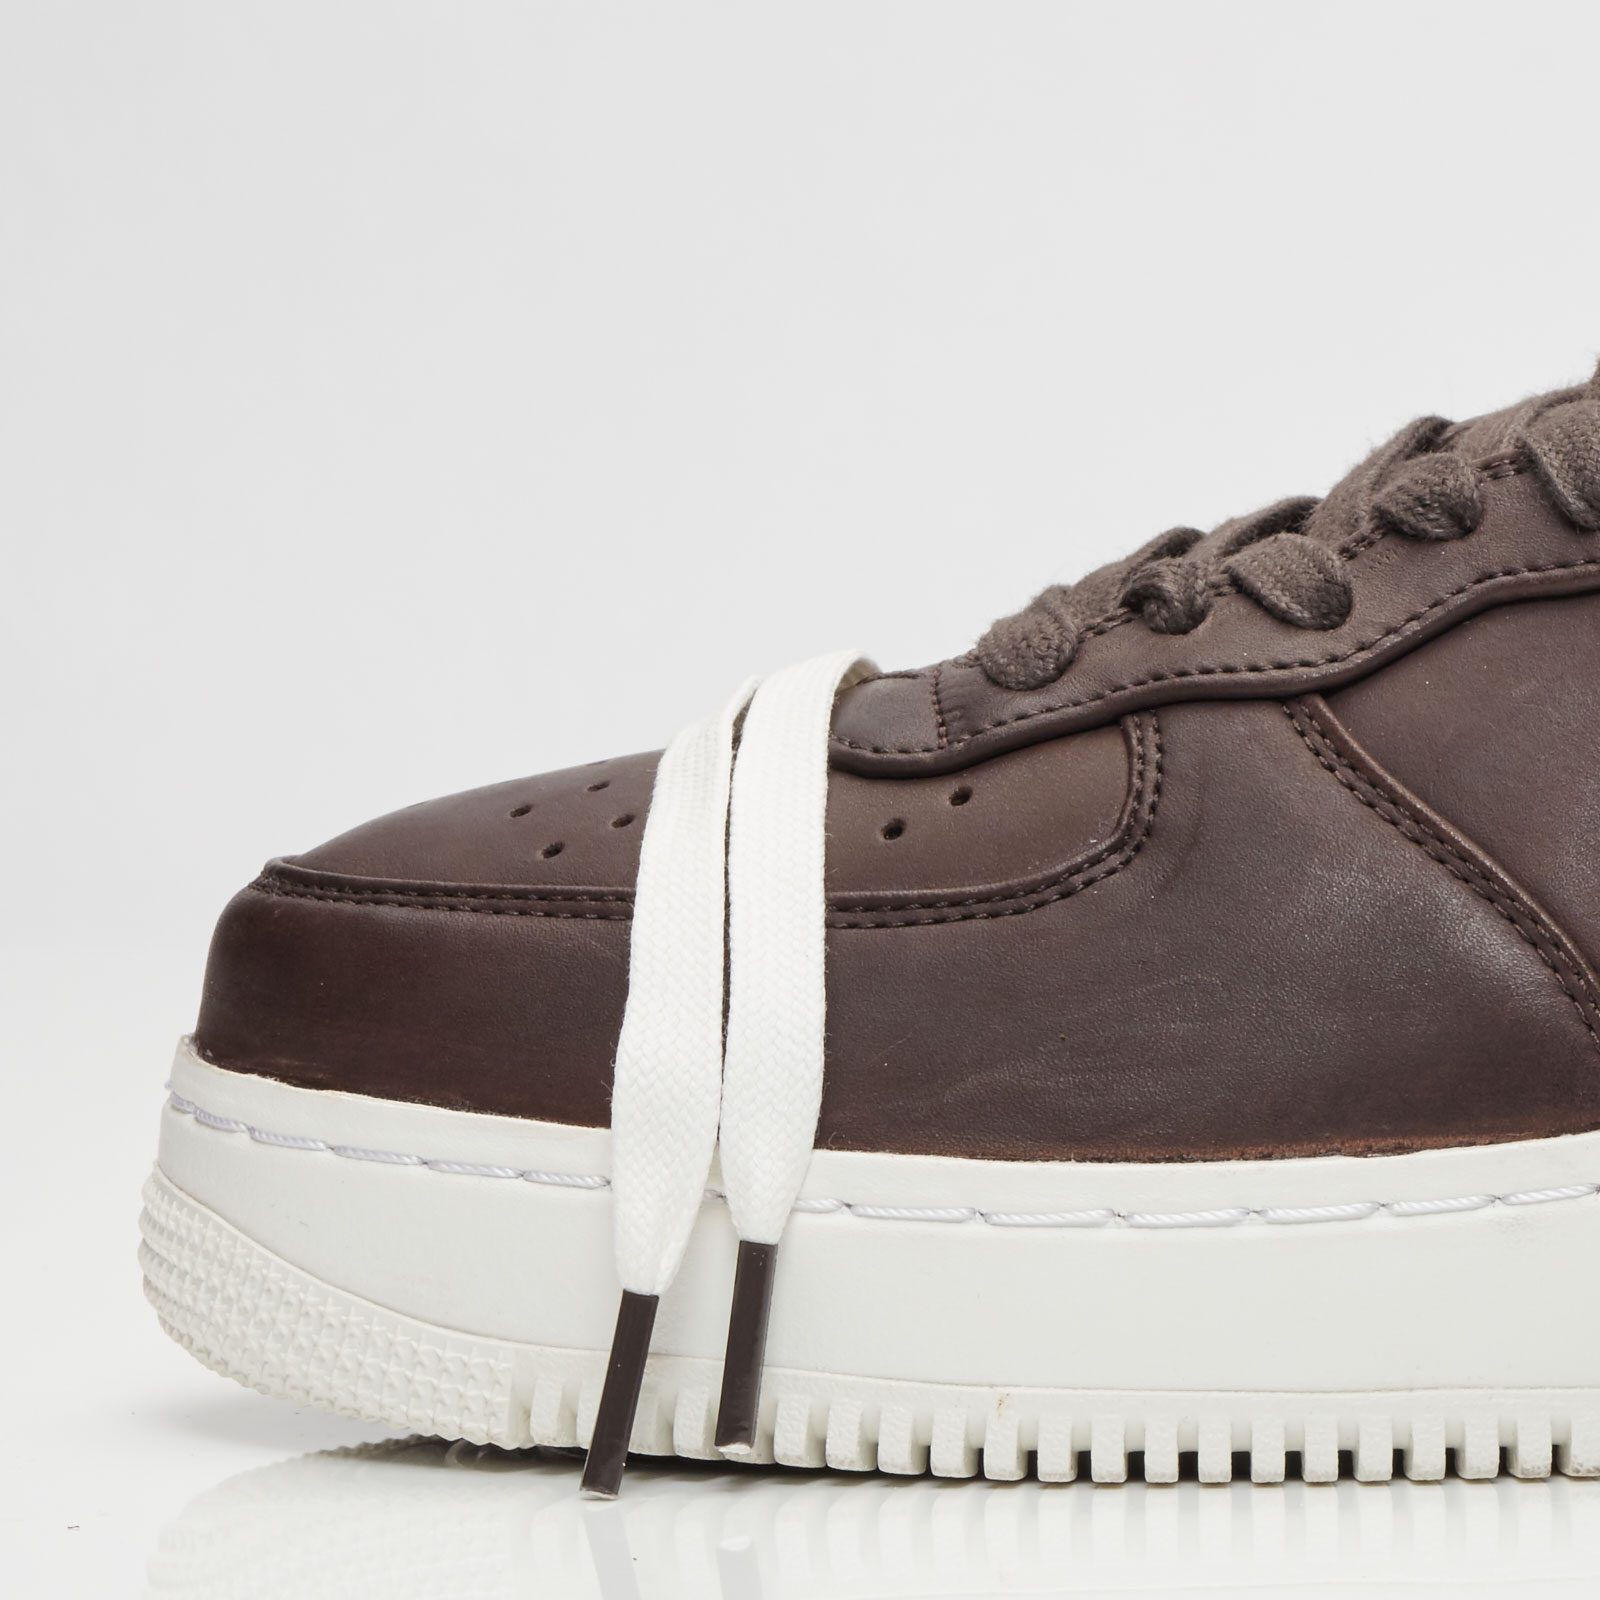 6127ed9638ca ... velvet brown u2022 kicksonfire f3a9e 7c1f0  promo code for nike air  force 1 mid c7de4 94269